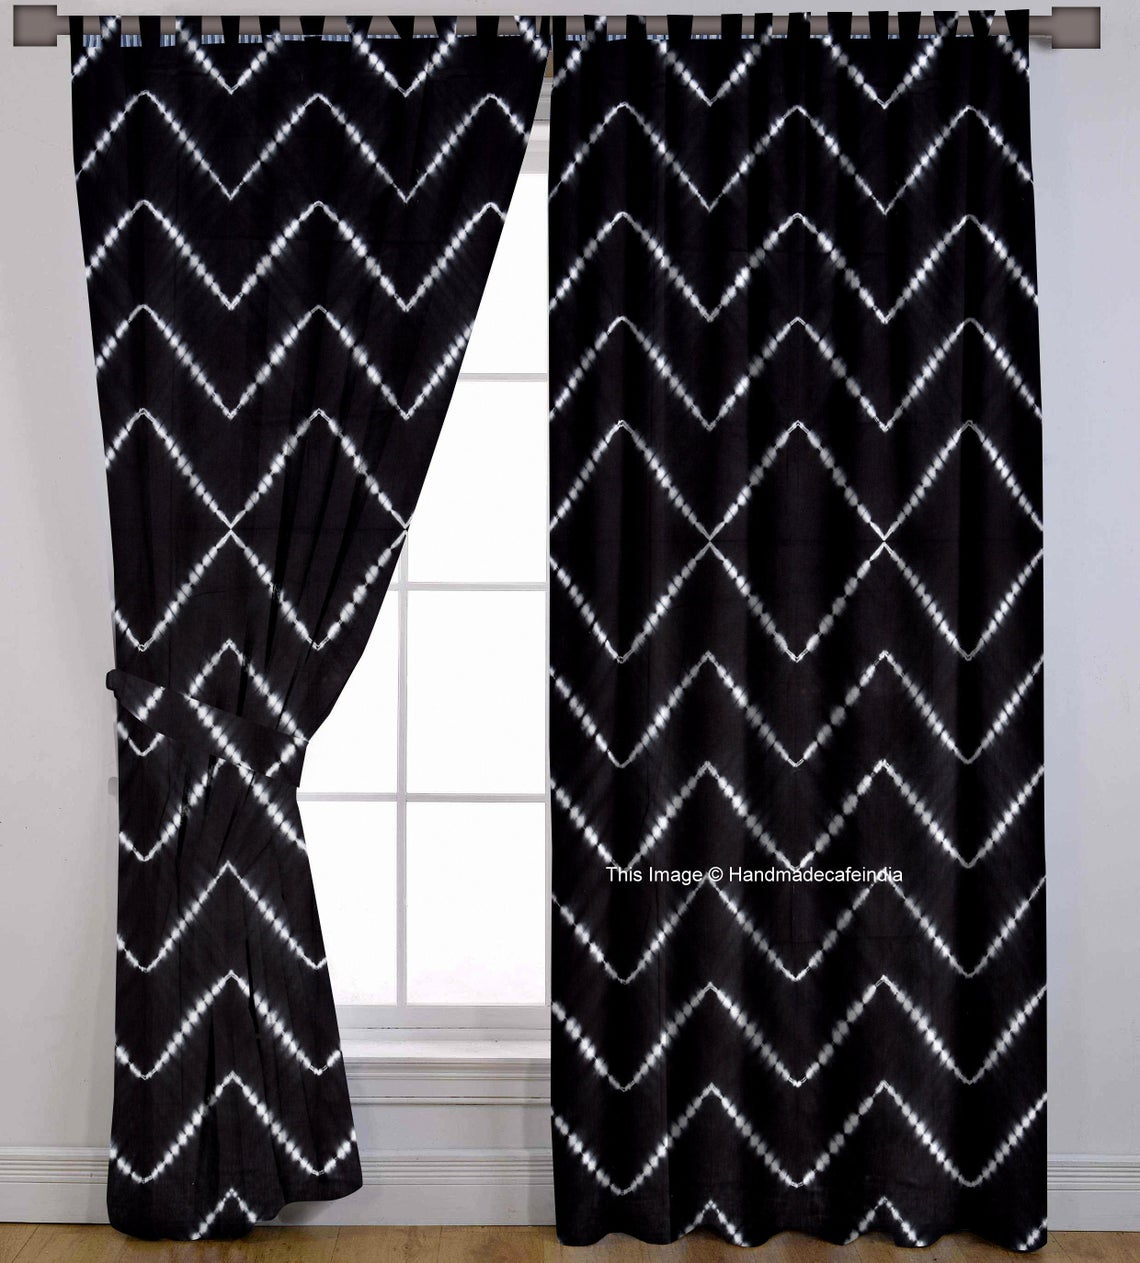 black curtains with white zig zag pattern